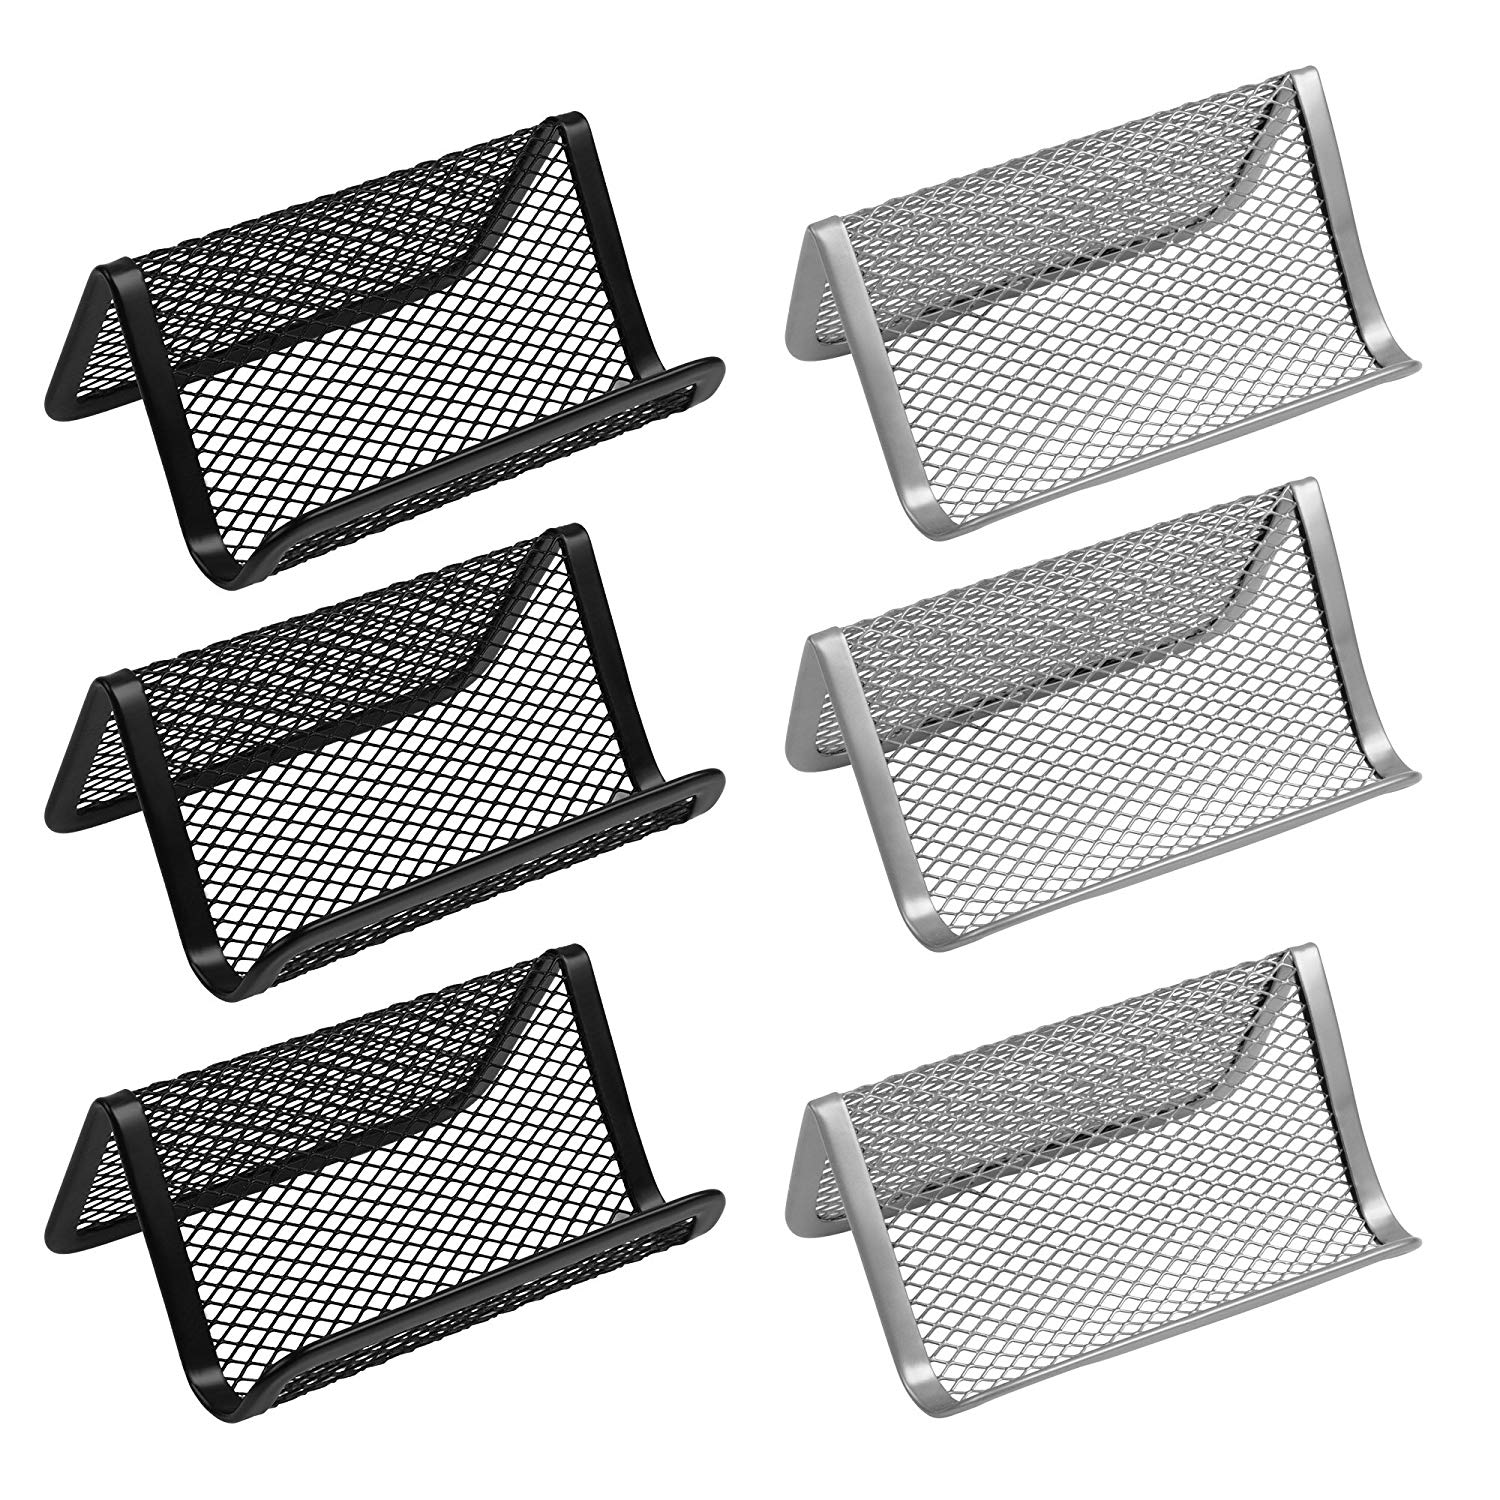 Cosmos Pack of 6 Metal Mesh Business Card Holder Business Card Holder Card Display Mesh Collection Organizer for Name Card, Black & Silver Color